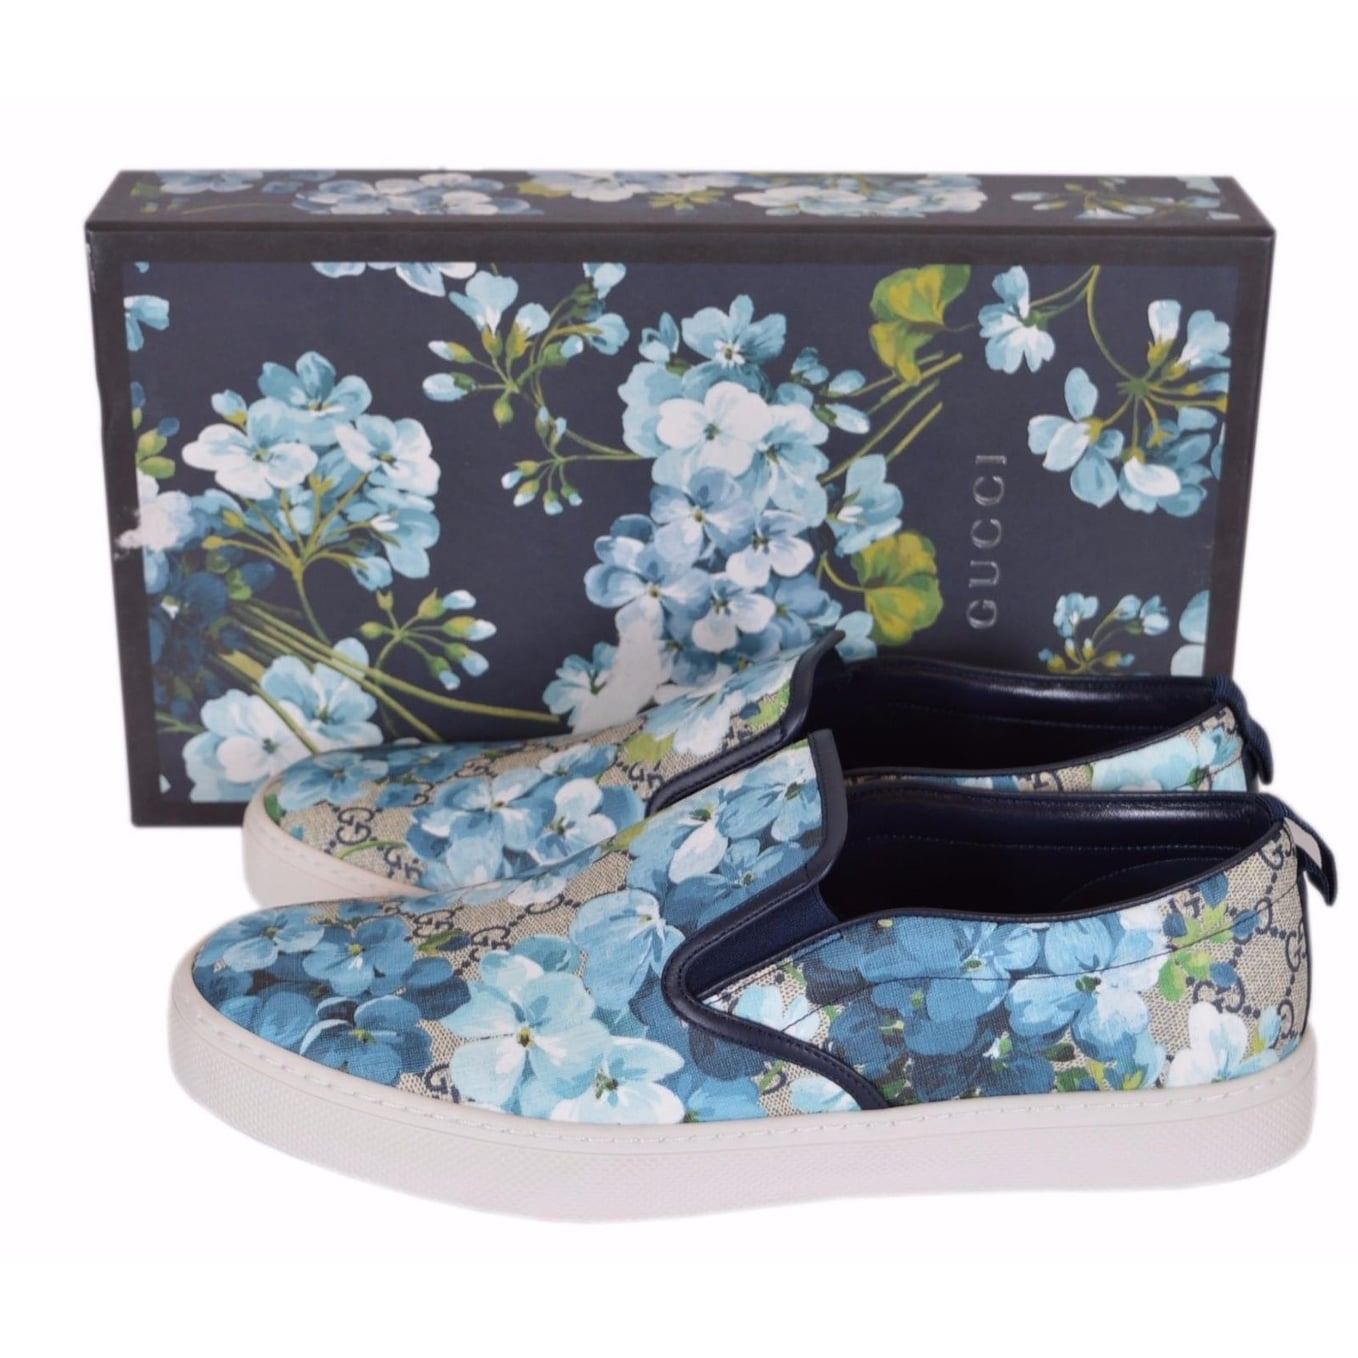 893e938e84b41 Shop Gucci Men s 407362 GG BLOOMS BLUE Coated Canvas Slip On Sneakers Shoes  12.5G 13.5US - Free Shipping Today - Overstock - 18945852